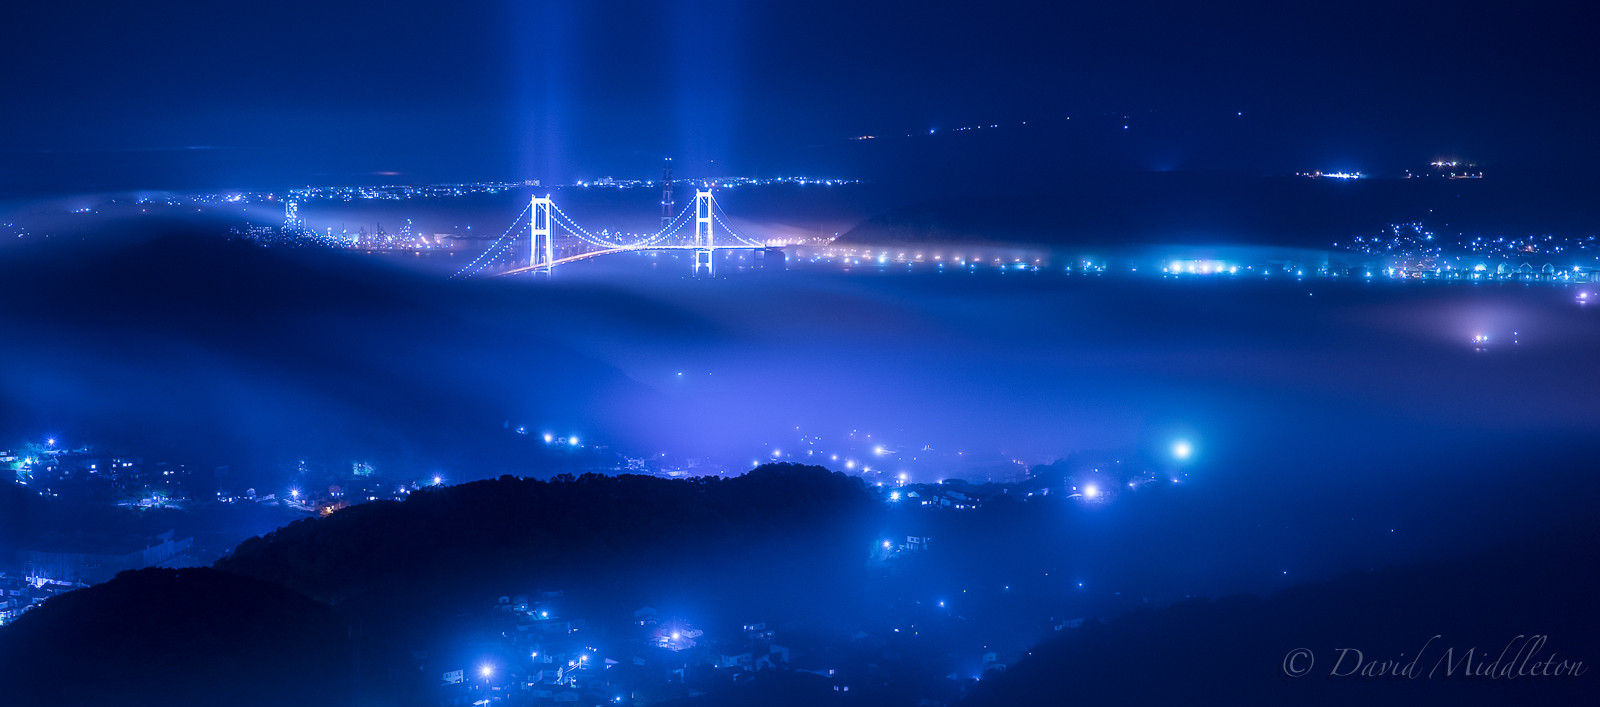 Fog Starting to Cover the City of Muroran